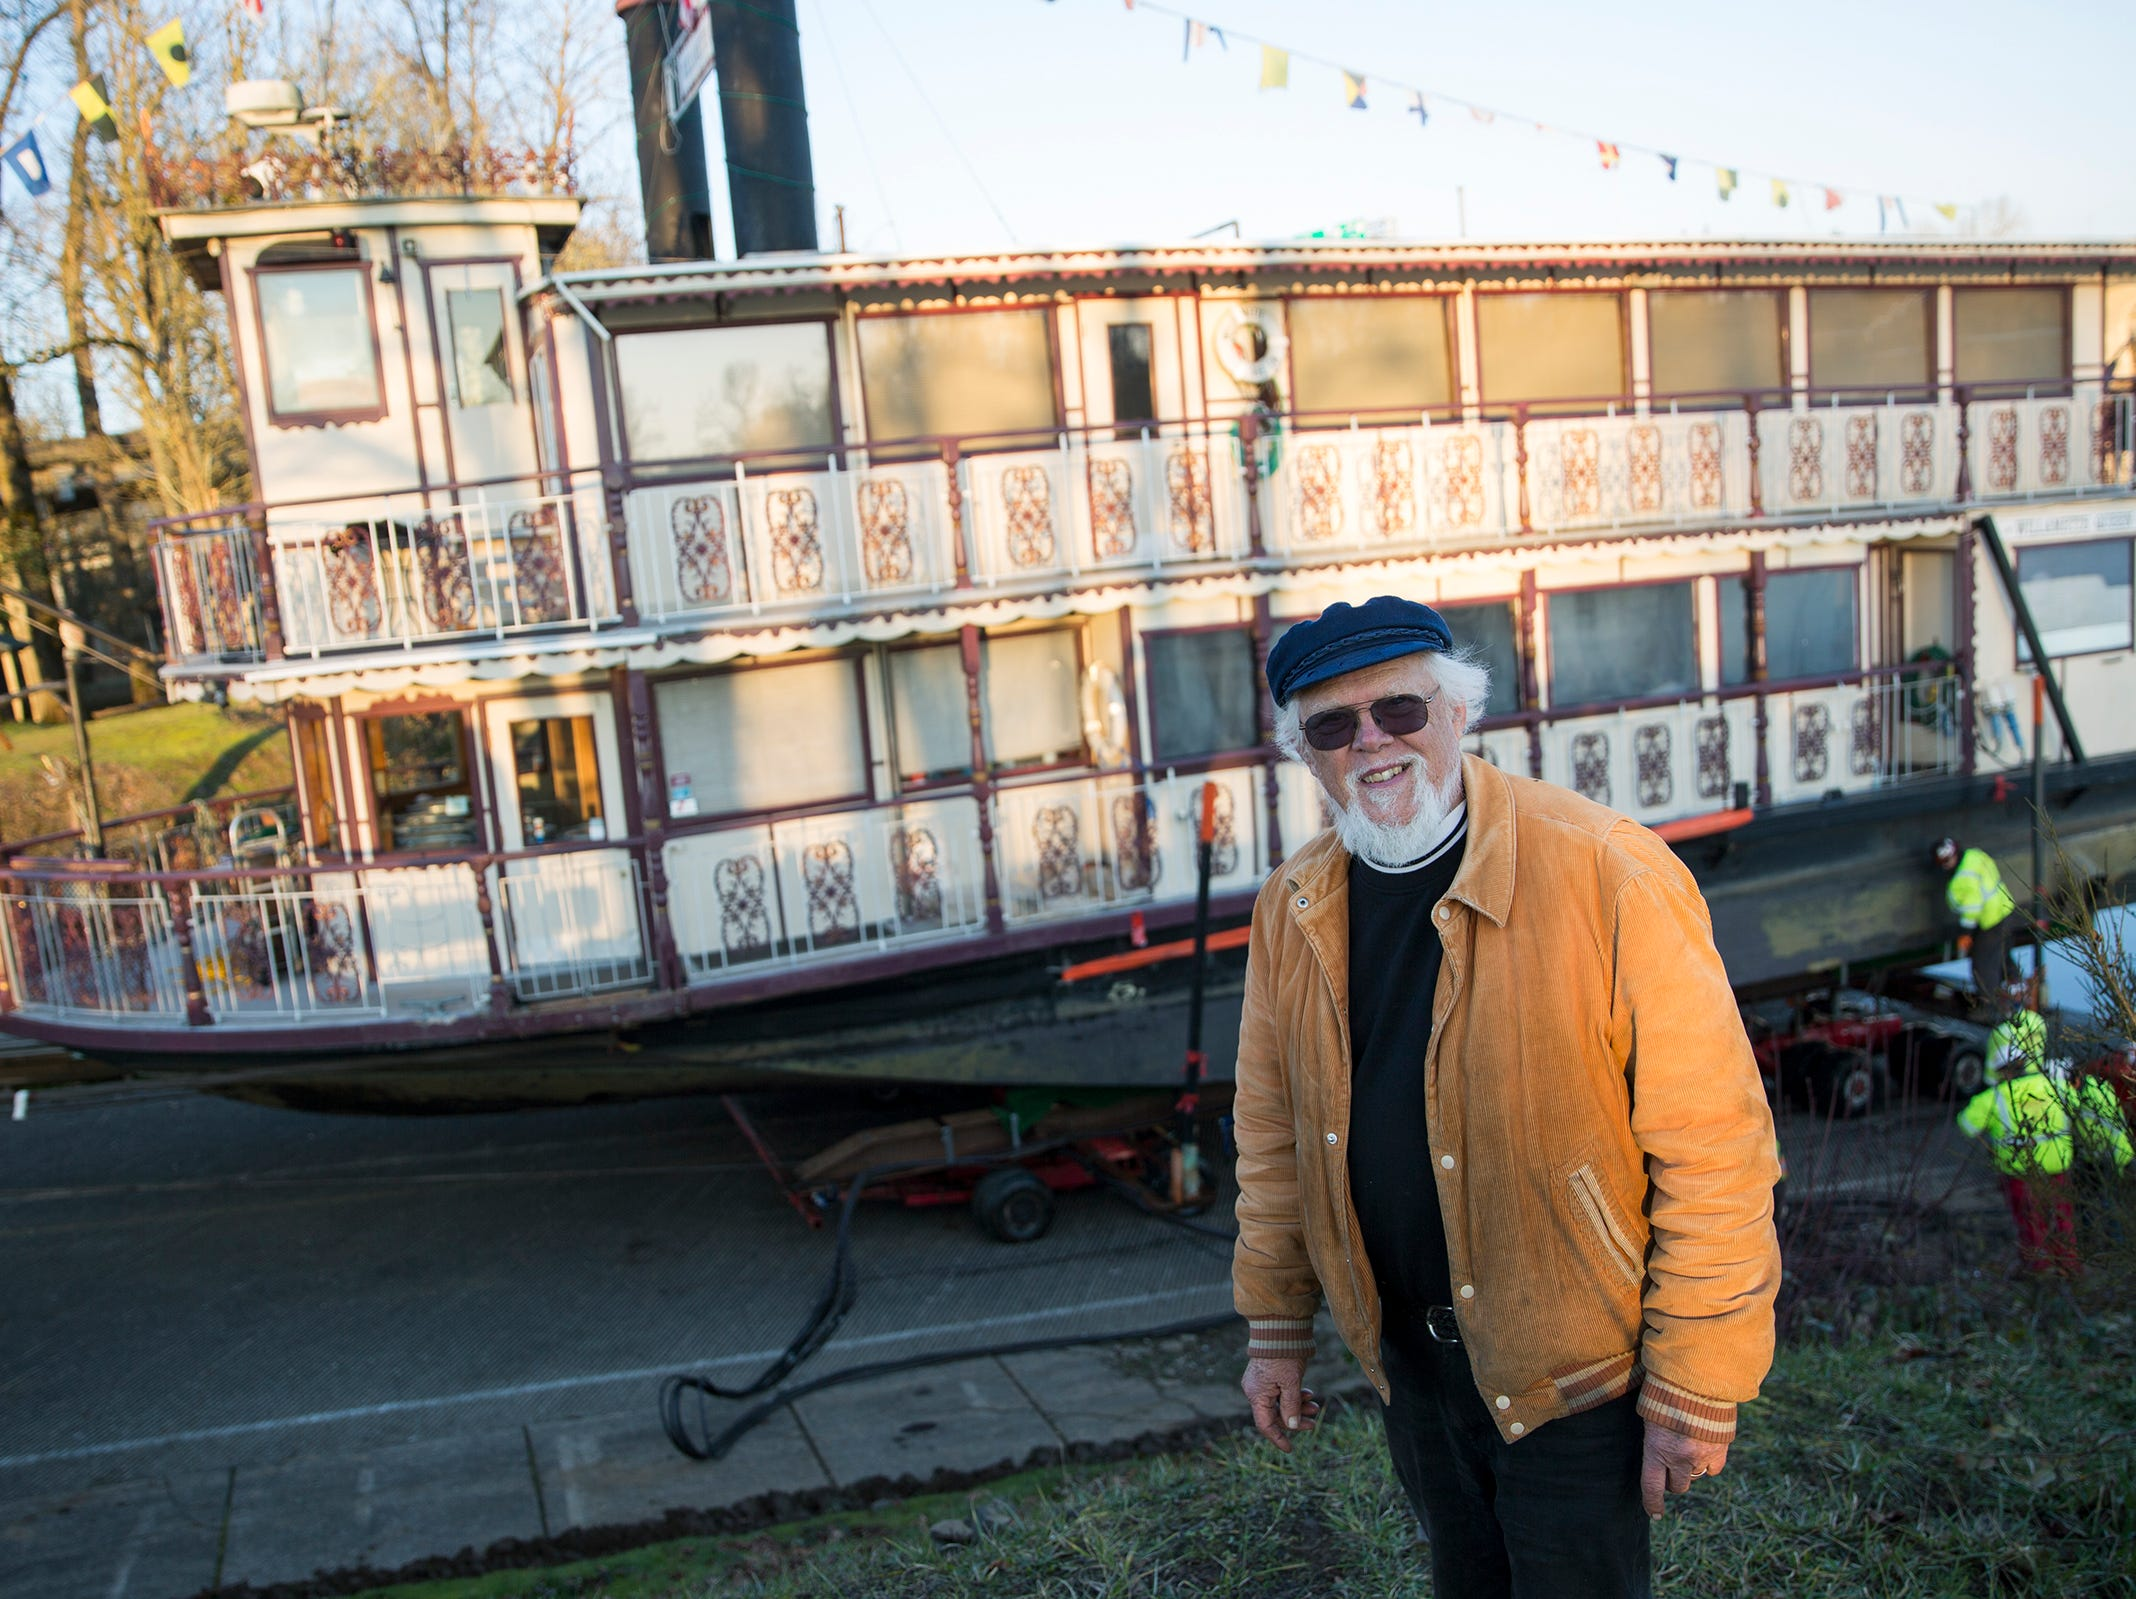 The Willamette Queen captain Richard Chesbrough in front of his boat in Salem on on Wednesday, Feb. 6, 2019. Chesbrough has been captain for 21 years now.